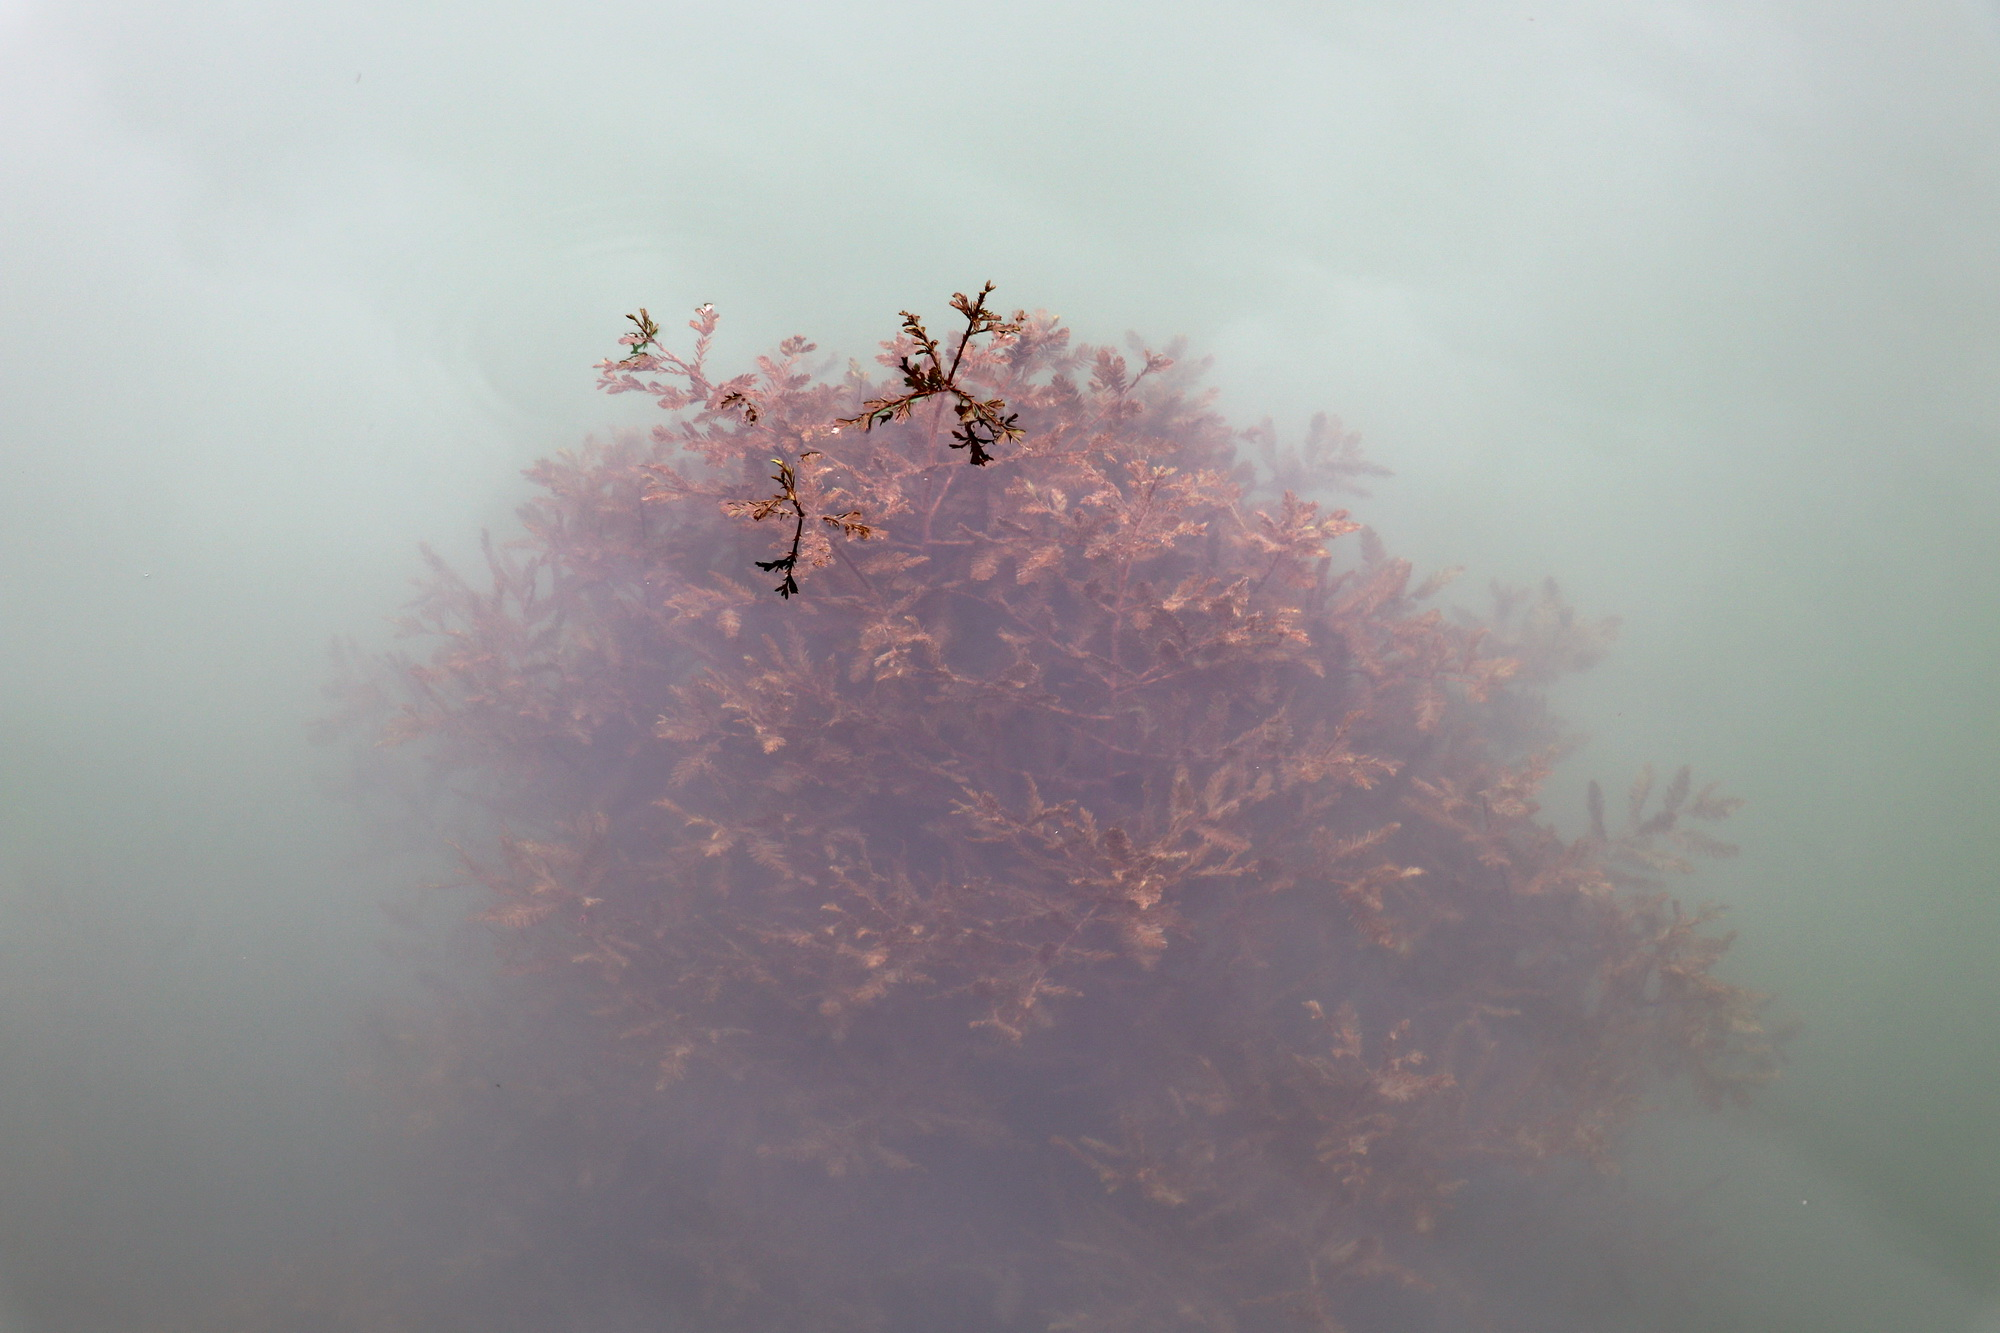 Taxodium under water_3877-resizedJPG